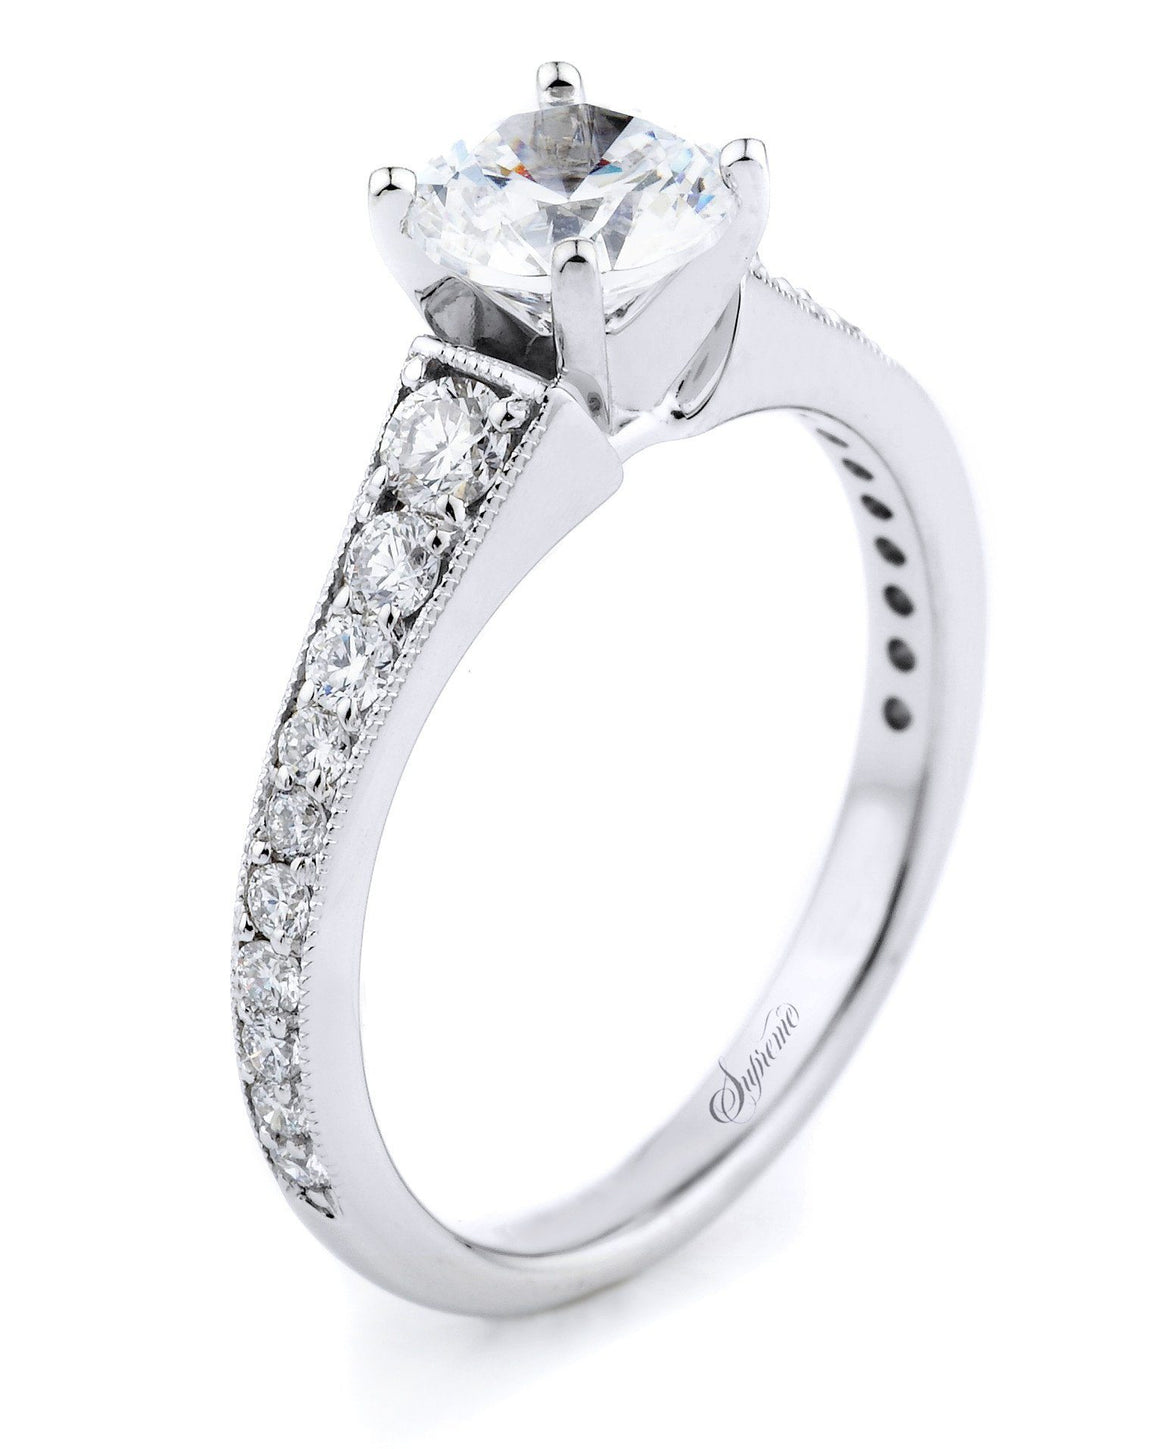 Supreme - 5292E, Engagement Ring, Supreme Jewelry - Birmingham Jewelry